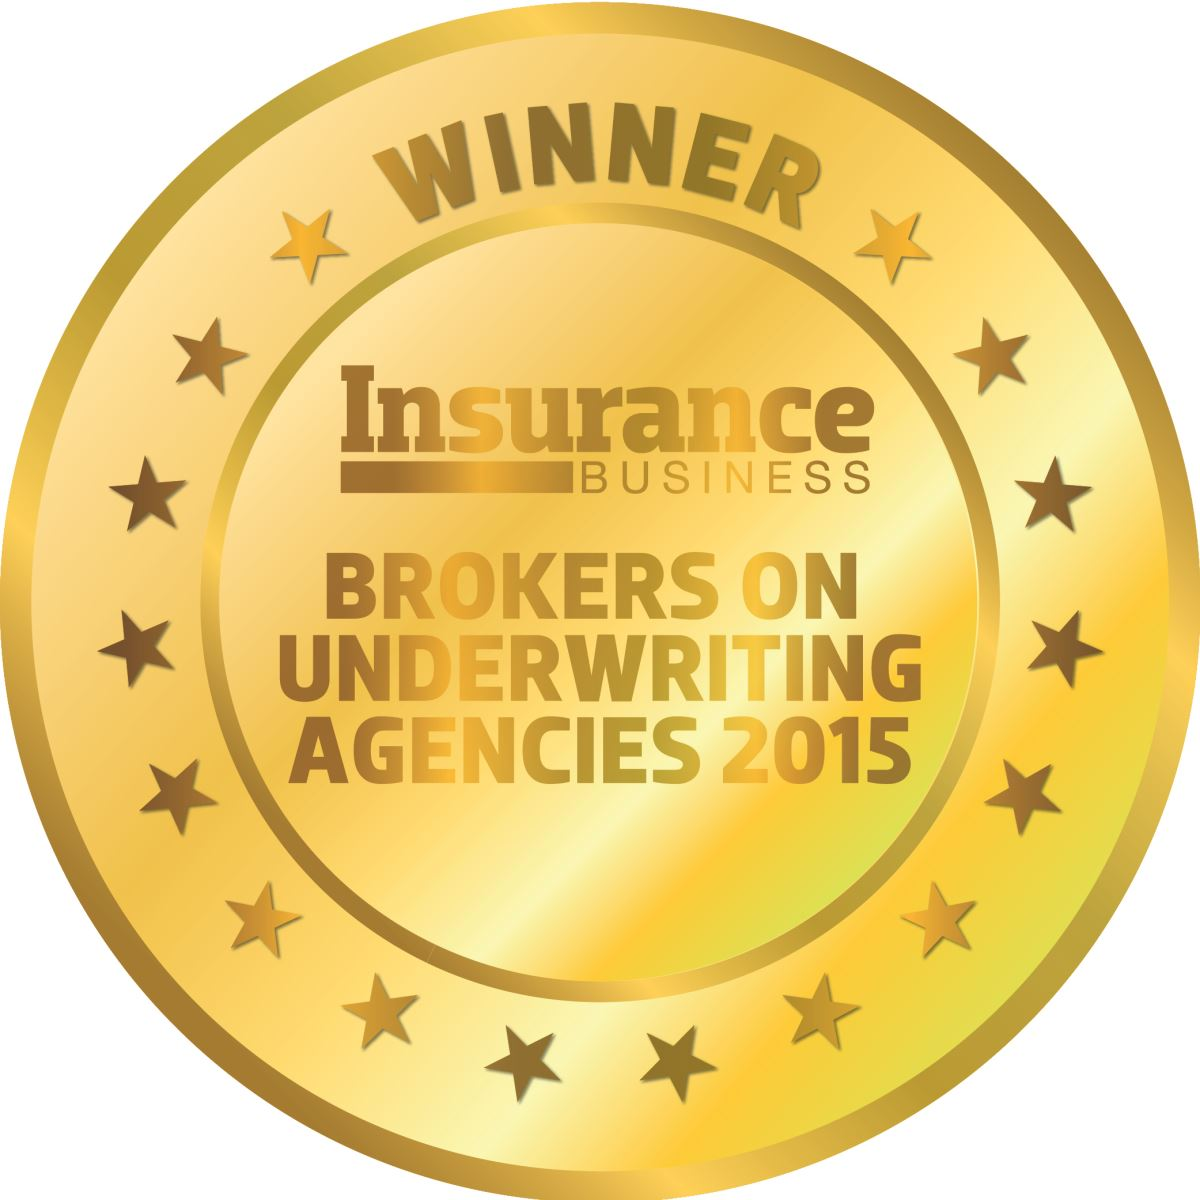 2 days left to enter the Brokers on Underwriting Agencies survey